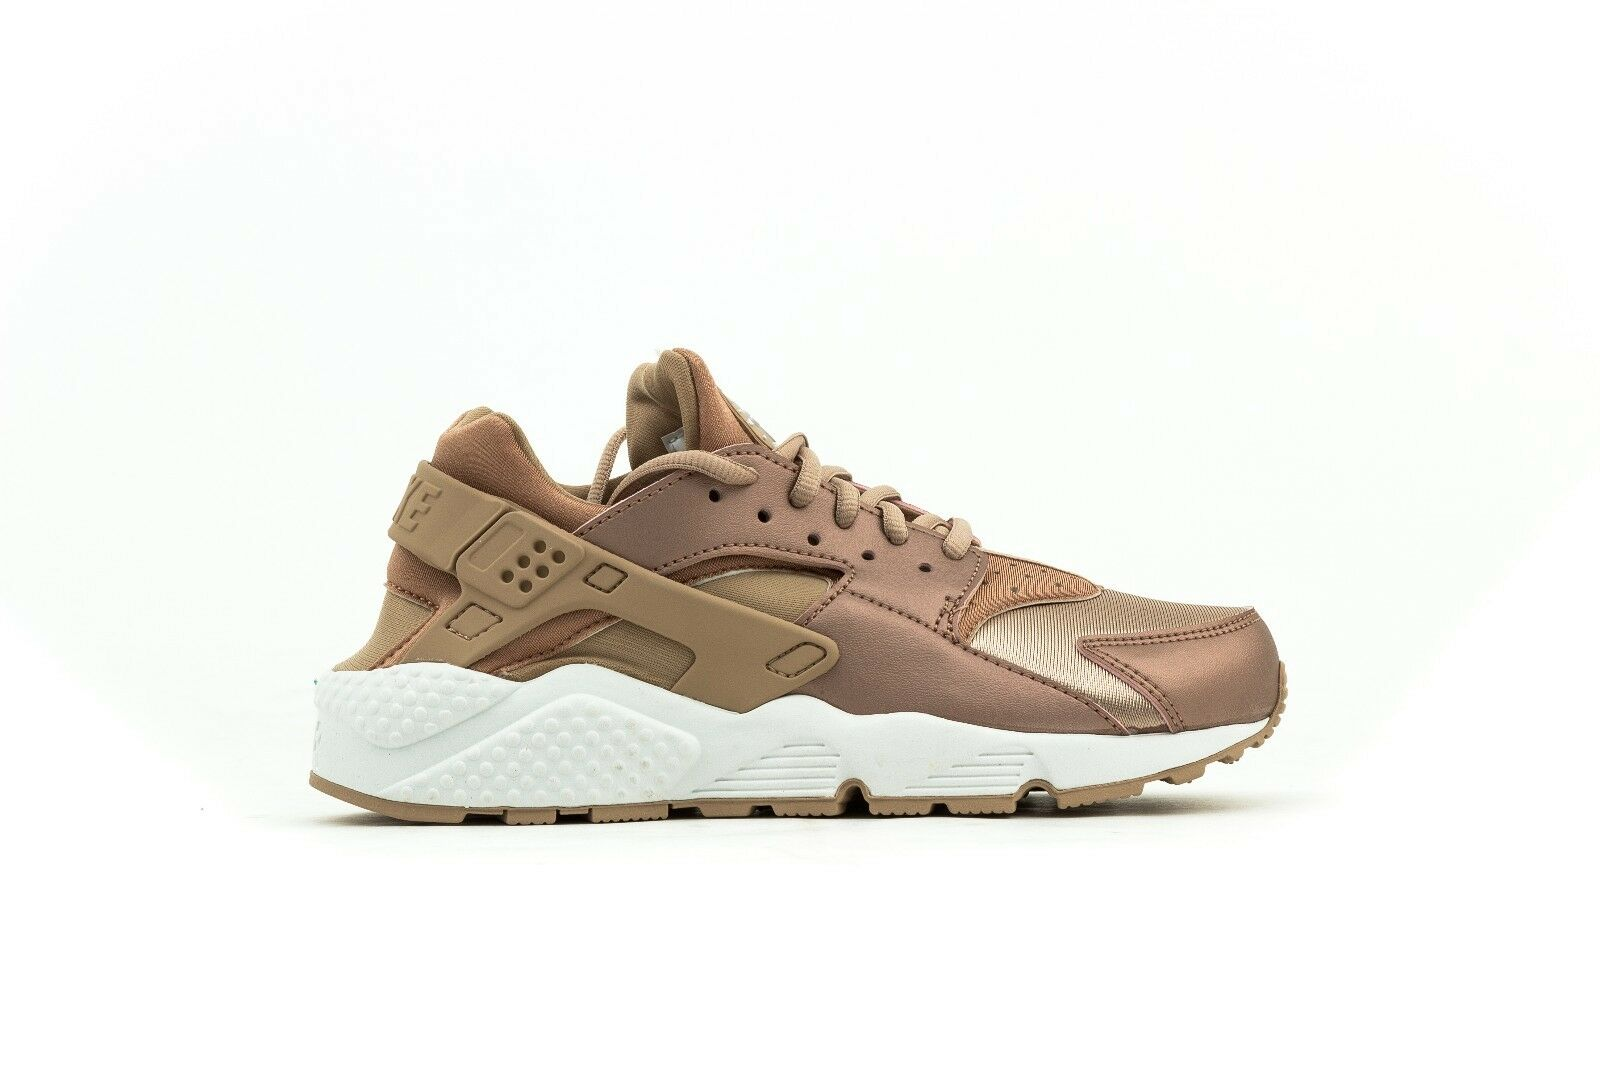 WOMEN'S NIKE AIR HUARACHE RUN NSW METALLIC ROSE/ELM  859429-900 SIZES W6.5